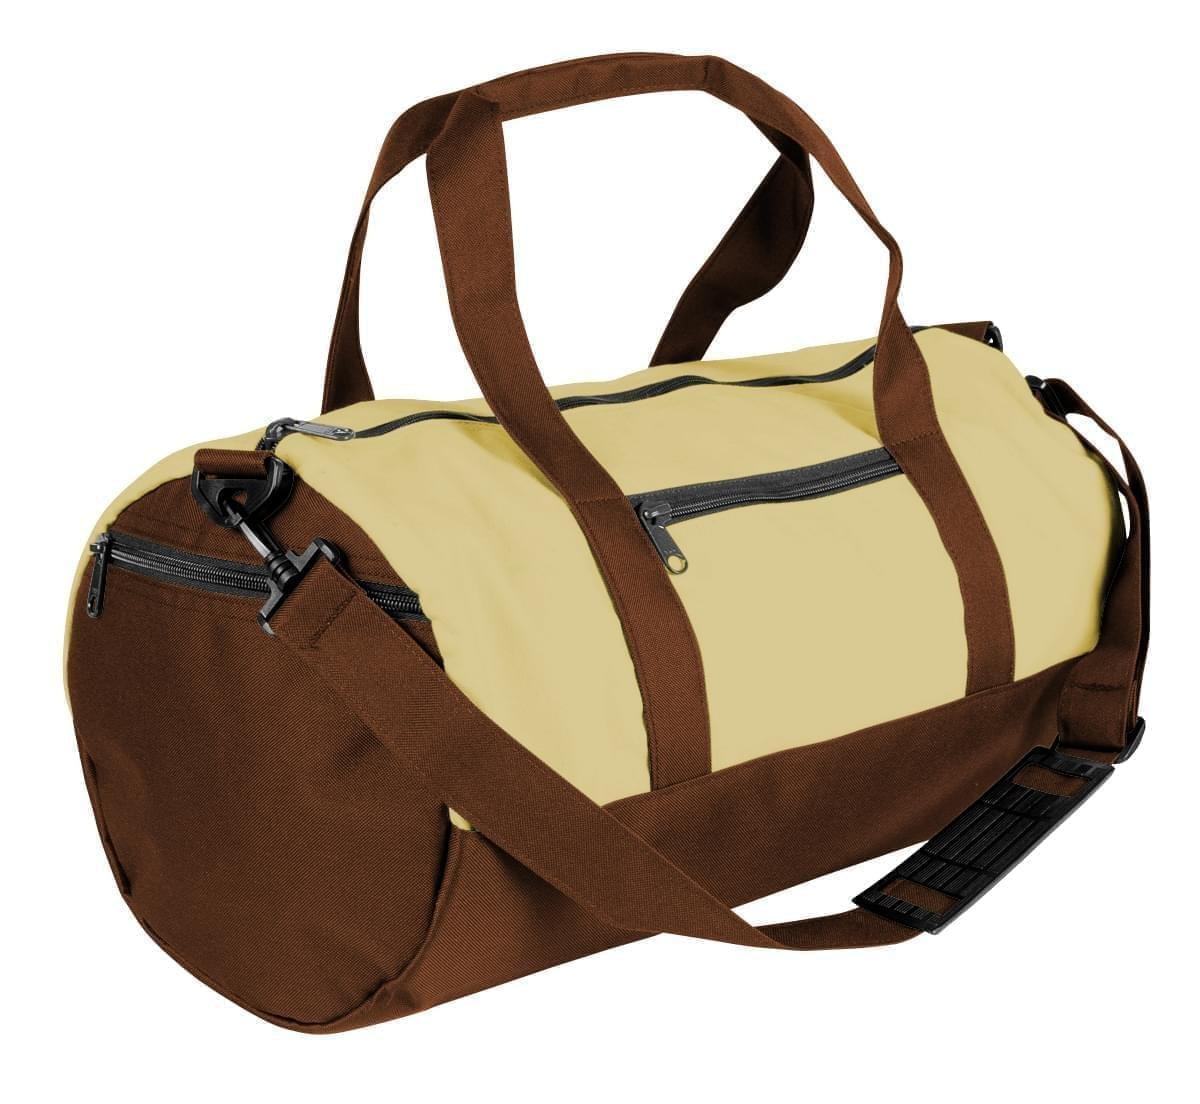 USA Made Heavy Canvas Athletic Barrel Bags, Natural-Brown, PMLXZ2AAVS